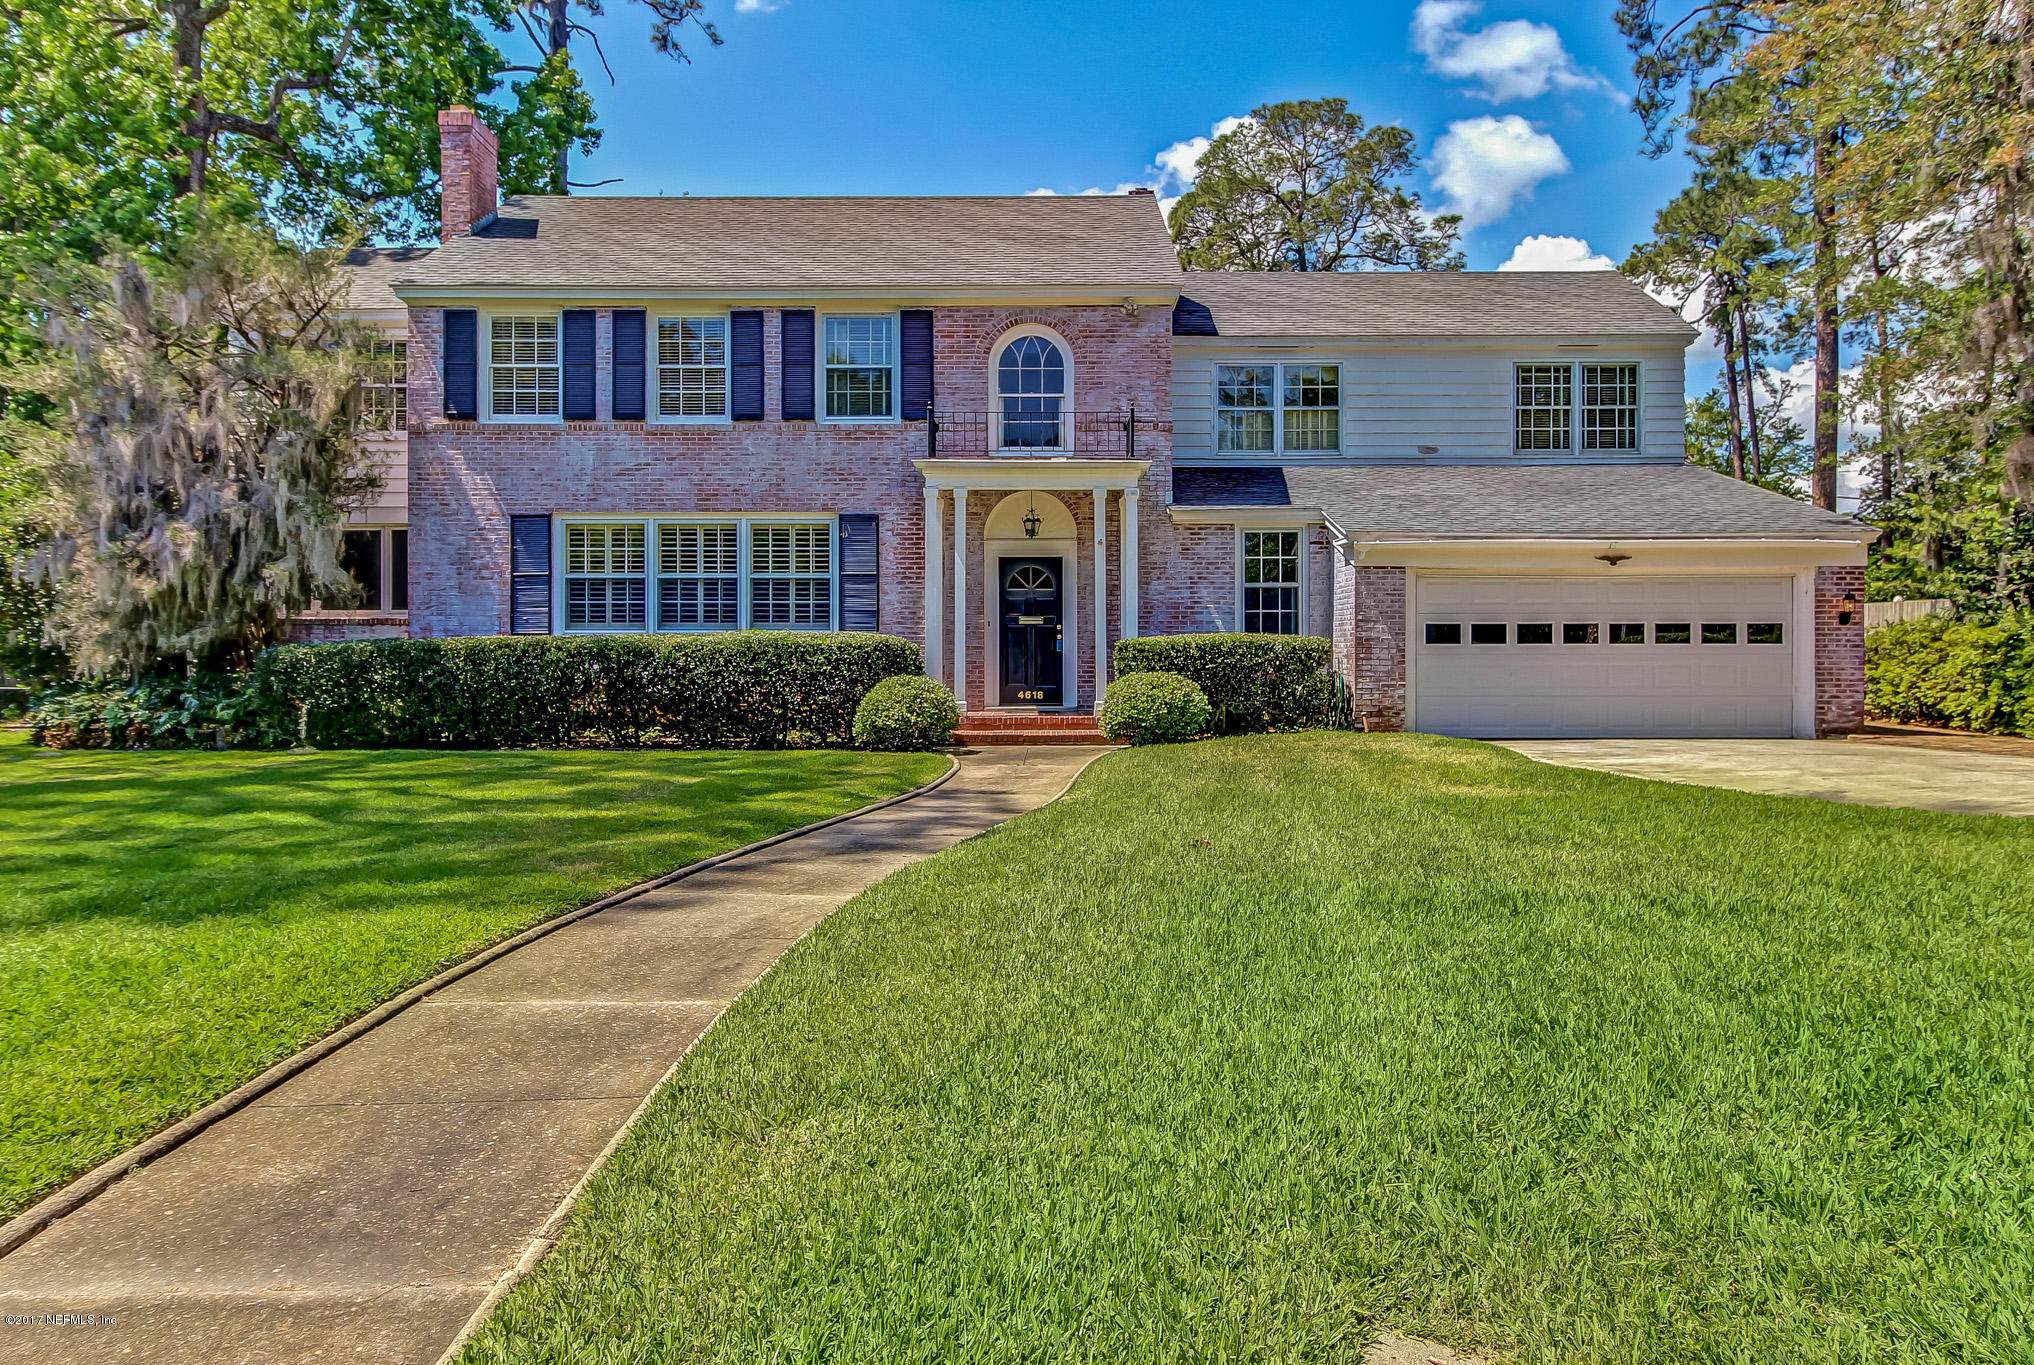 4618 APACHE, JACKSONVILLE, FLORIDA 32210, 4 Bedrooms Bedrooms, ,4 BathroomsBathrooms,Residential - single family,For sale,APACHE,877771